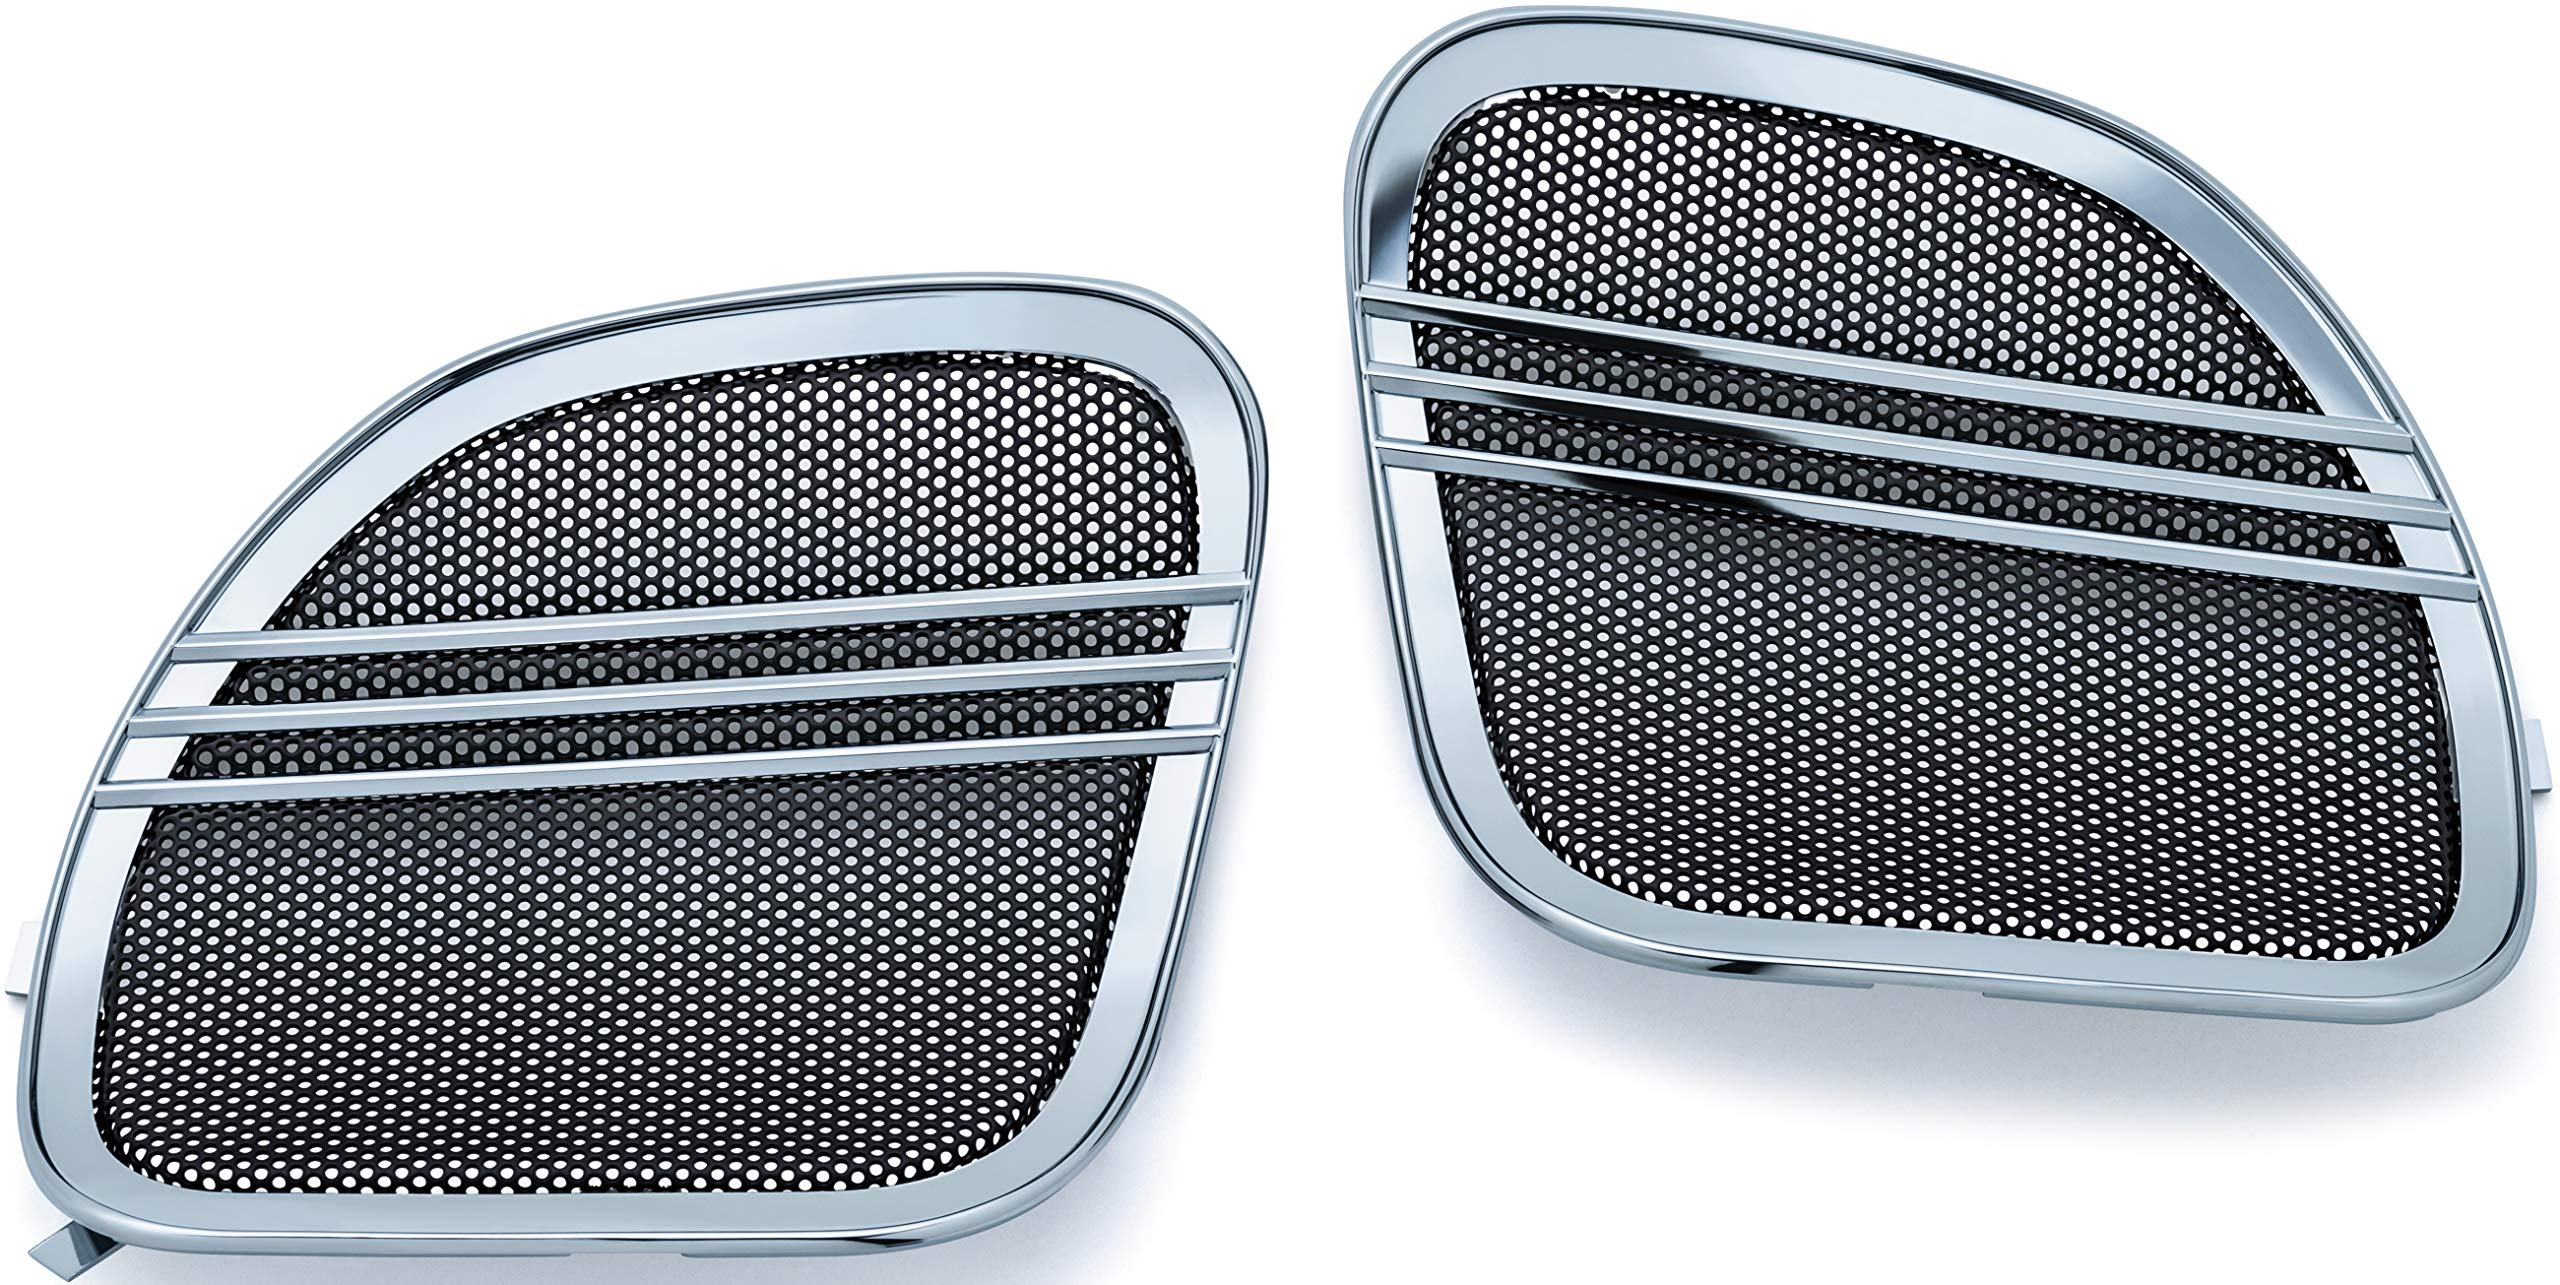 Kuryakyn 7378 Tri-Line Speaker Grills with Aluminum Mesh Screen for 2015-19 Harley-Davidson Motorcycles: Chrome, Pack of 2 by Kuryakyn